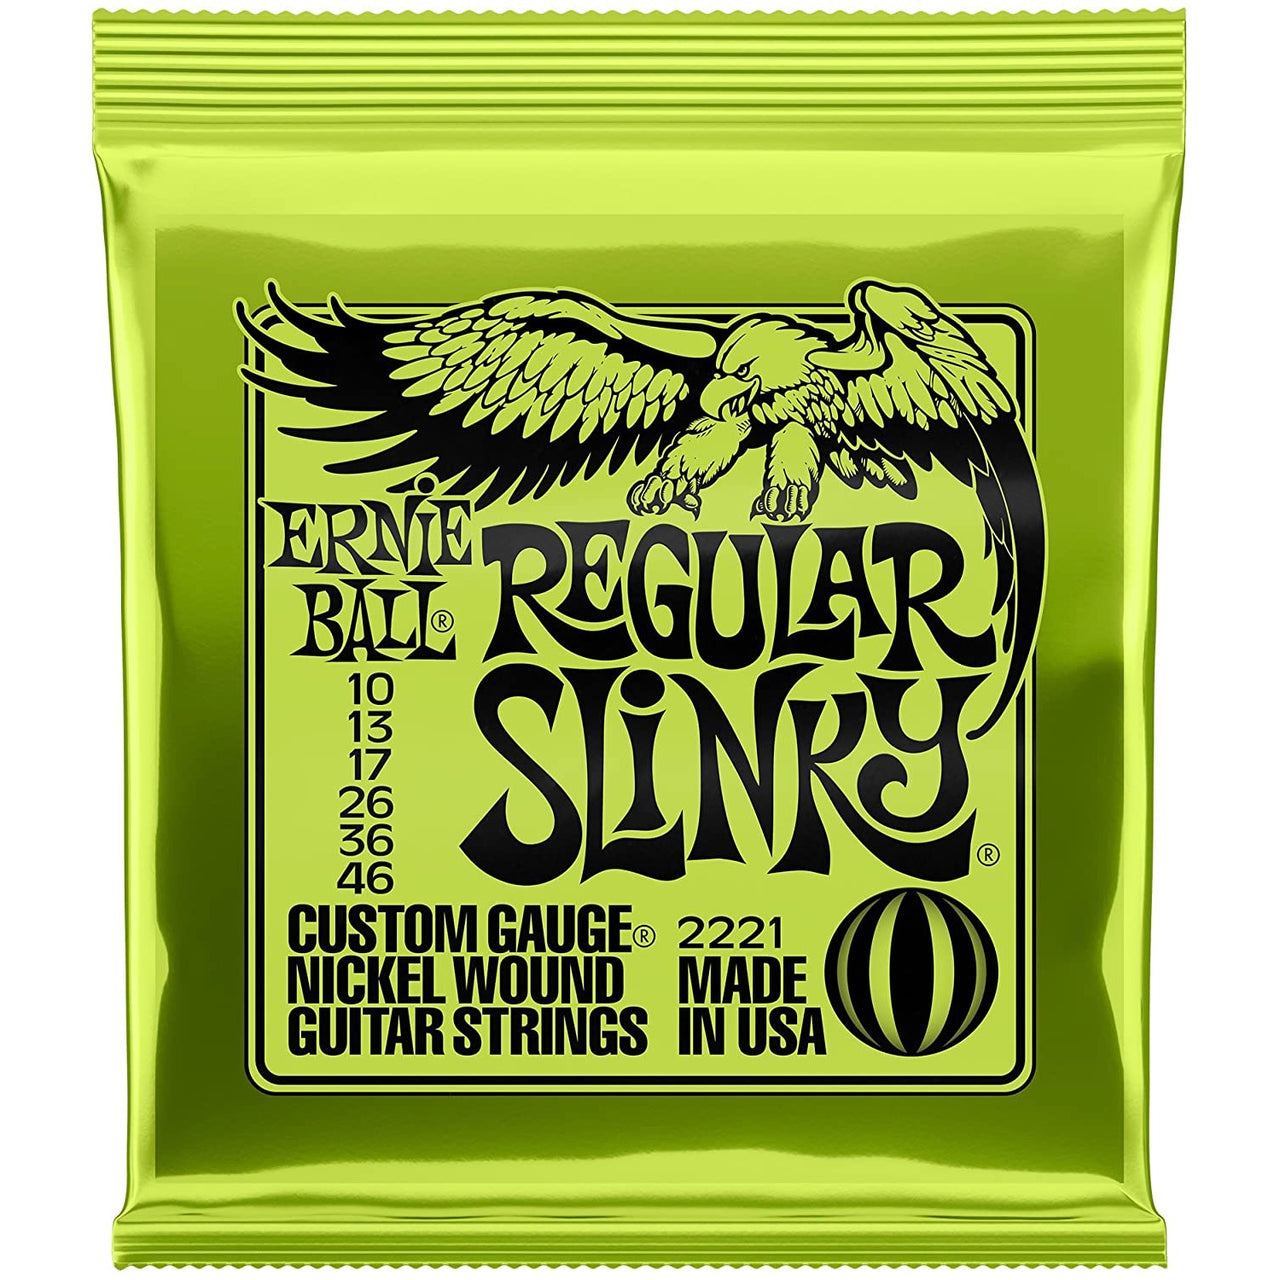 Ernie Ball Regular Slinky Electric Guitar Strings - 10-46